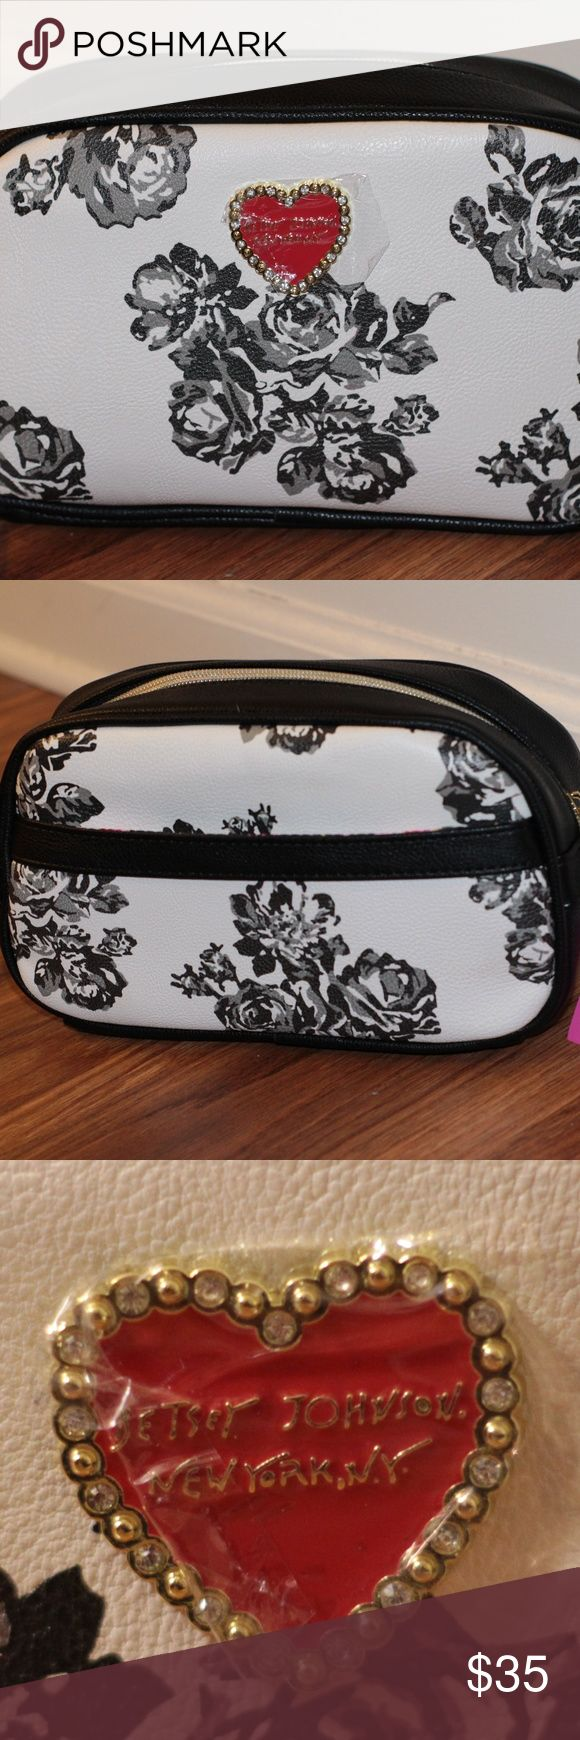 Betsey Johnson Small Cosmetic Bag Super cute Betsey Johnson cosmetic bag with a black rose pattern on a white background. Brand new, never used. Betsey Johnson Bags Cosmetic Bags & Cases